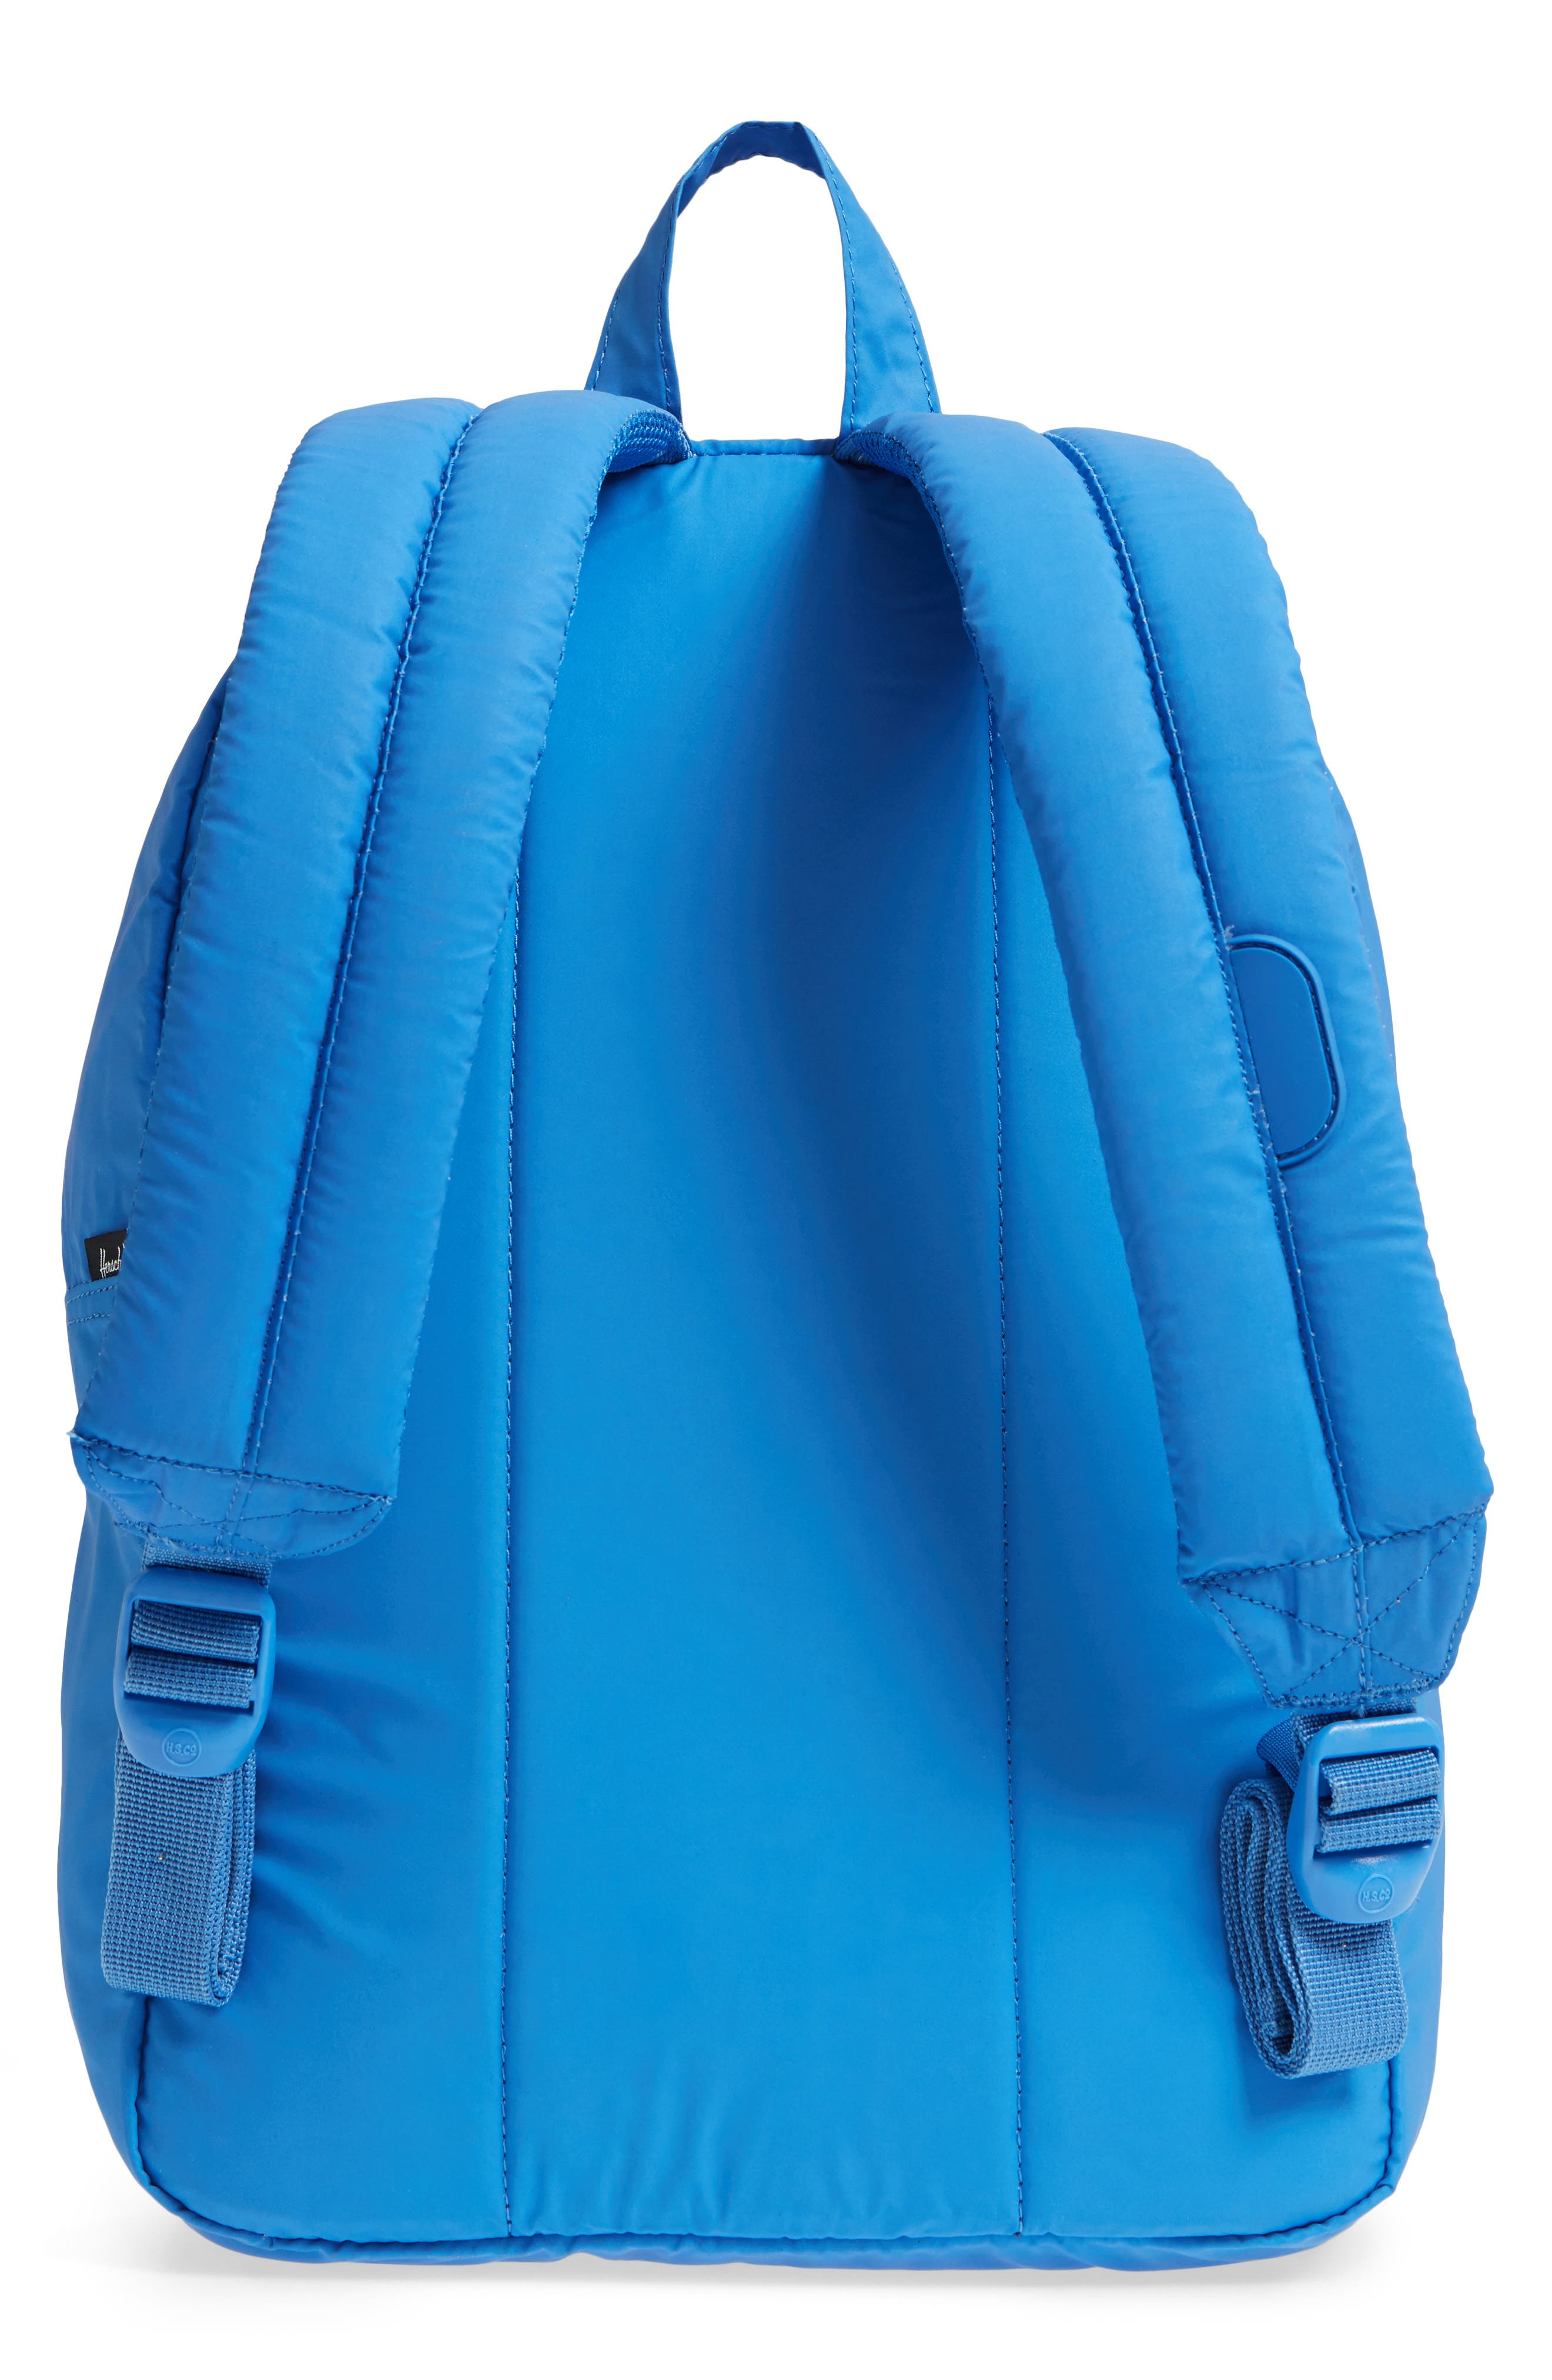 Heritage Backpack,                             Alternate thumbnail 2, color,                             Blue Reflective Rubber